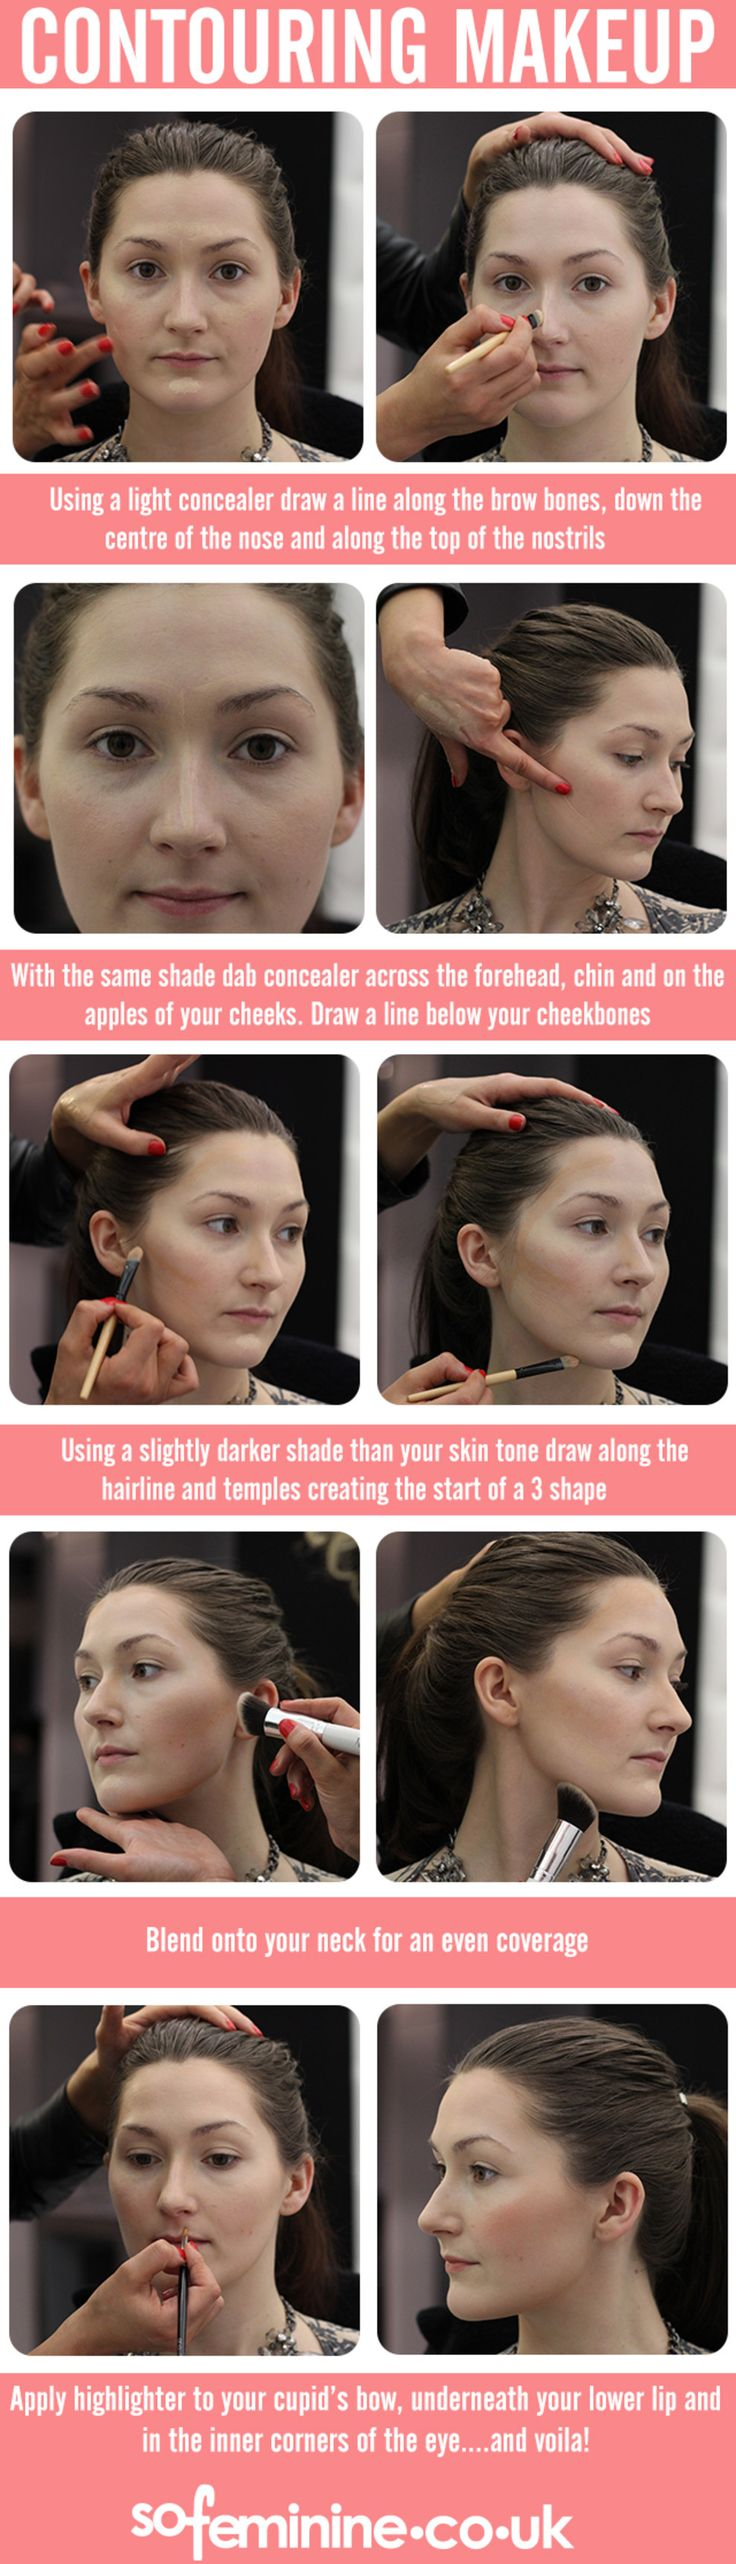 Make Like Kim Kardashian And Contour Your Cheeks The Easy Way With This  Simple How